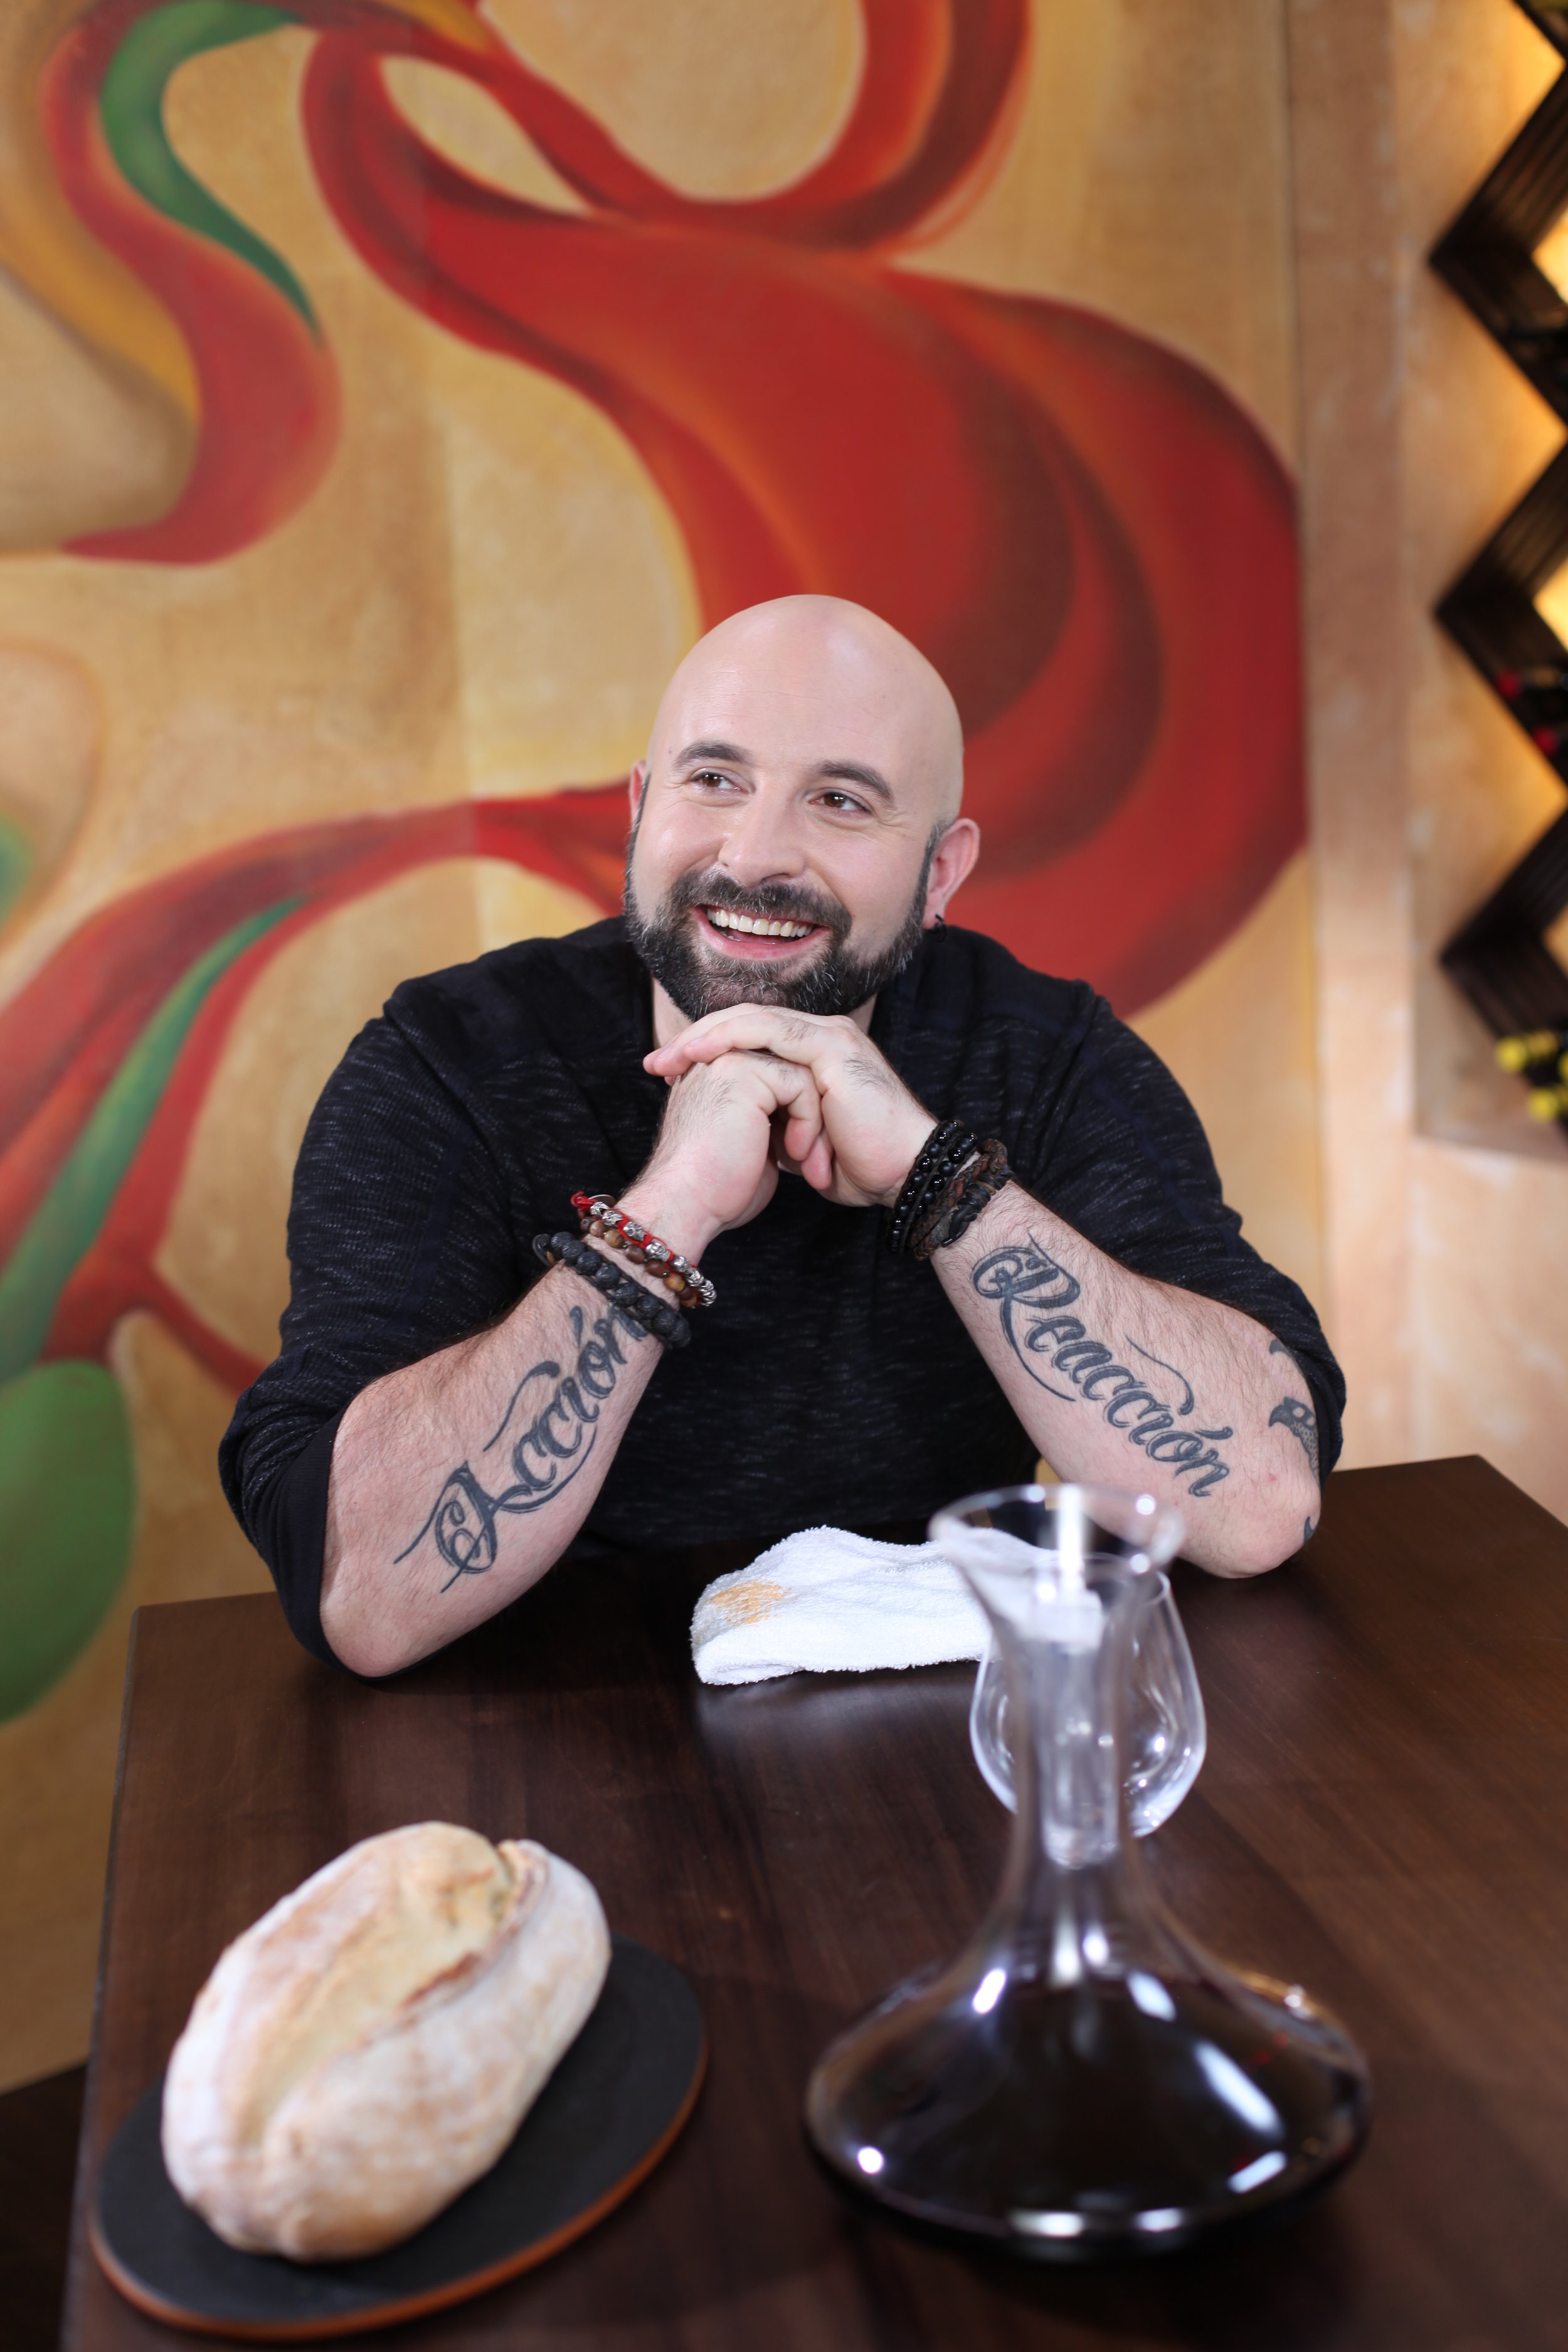 Chef Tigretón on the set of Latin Kitchen - Broadcasted on Gusto.tv, Bell Media